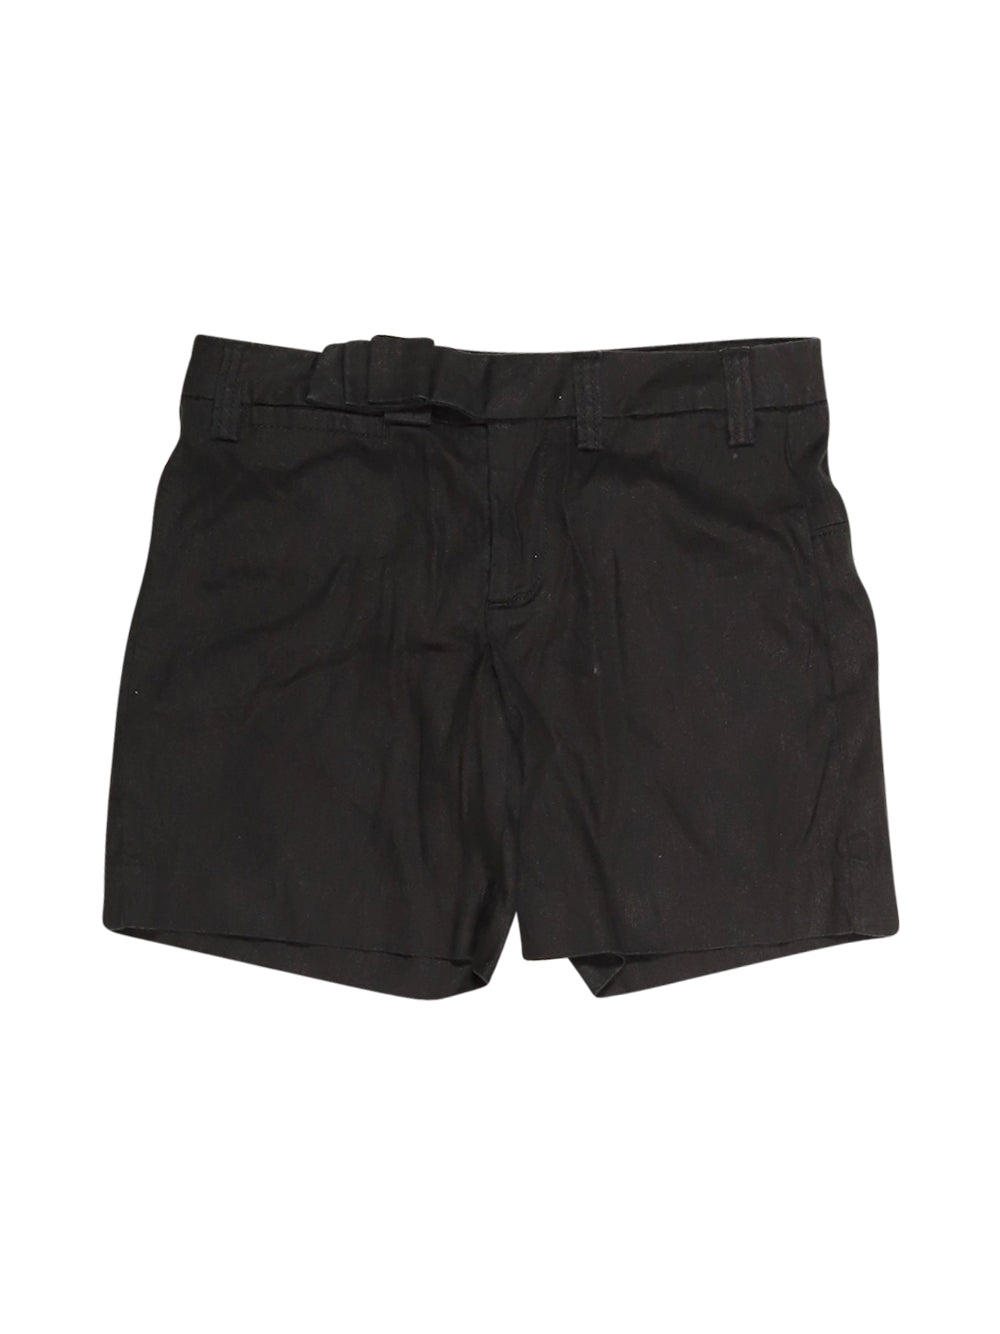 Front photo of Preloved Miss Sixty Black Woman's shorts - size 6/XS